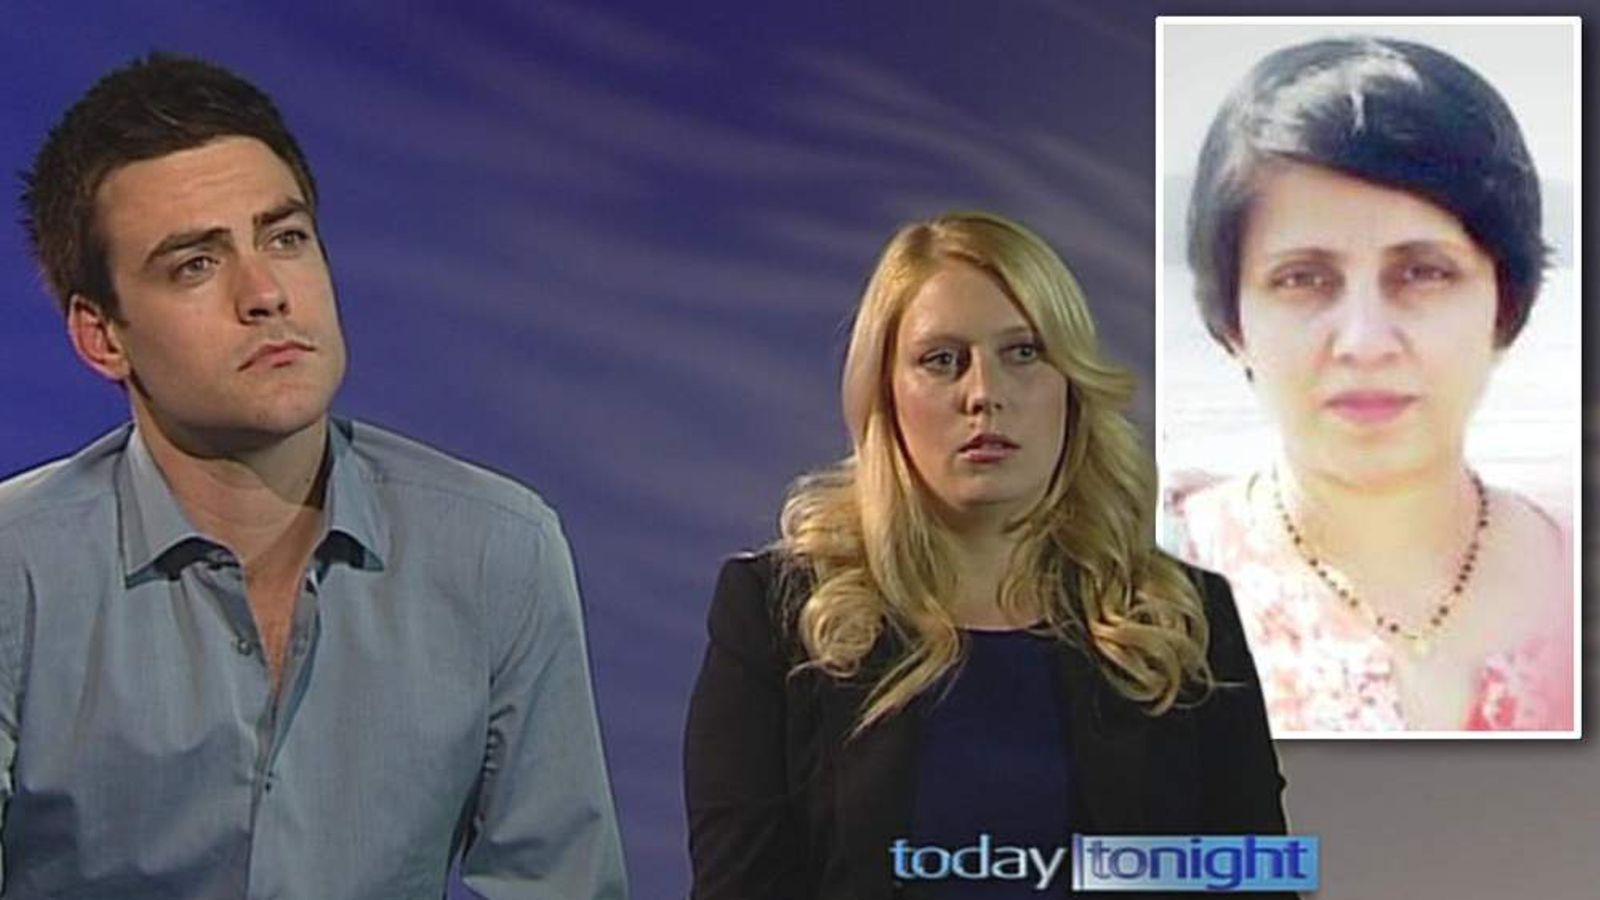 Radio Djs Michael Christian and Mel Greig talk on australian tv show 'today tonight' about the telephone prank they played on now deceased nurse Jacintha Saldahna.